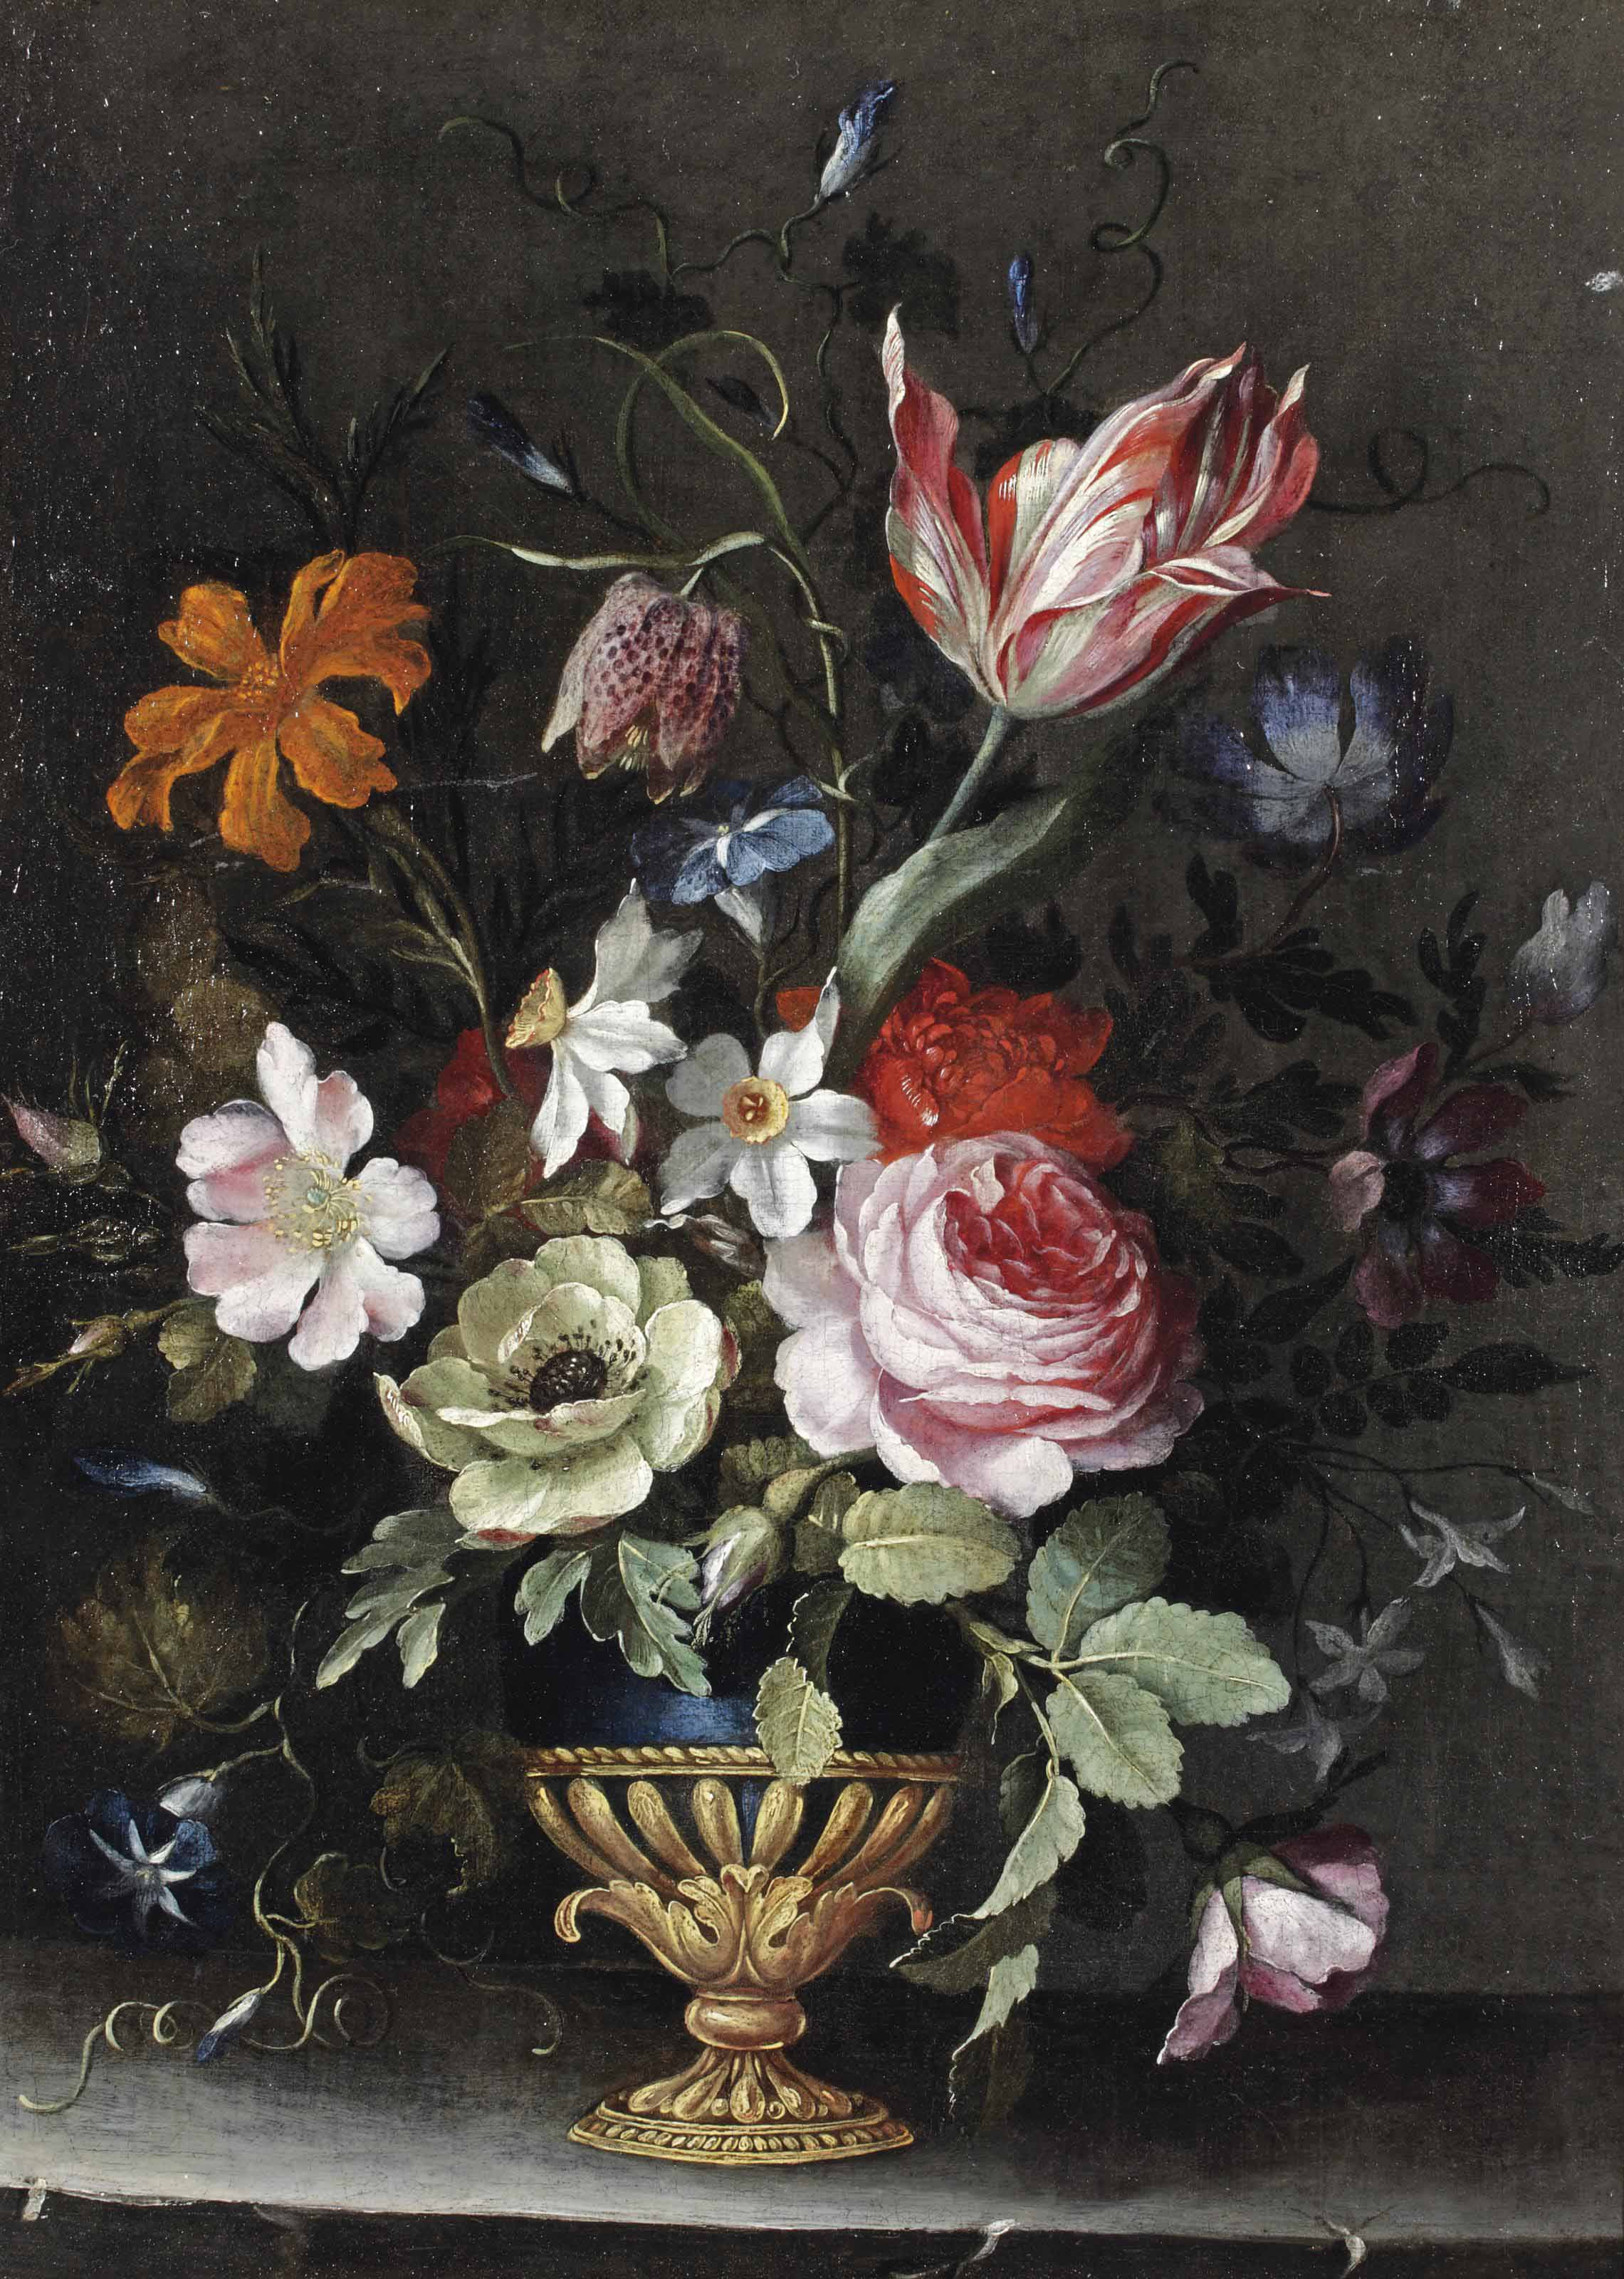 Roses, peonies, a tulip, daffodils, morning glory and other flowers in a blue lacquer and gilt vase on a stone ledge